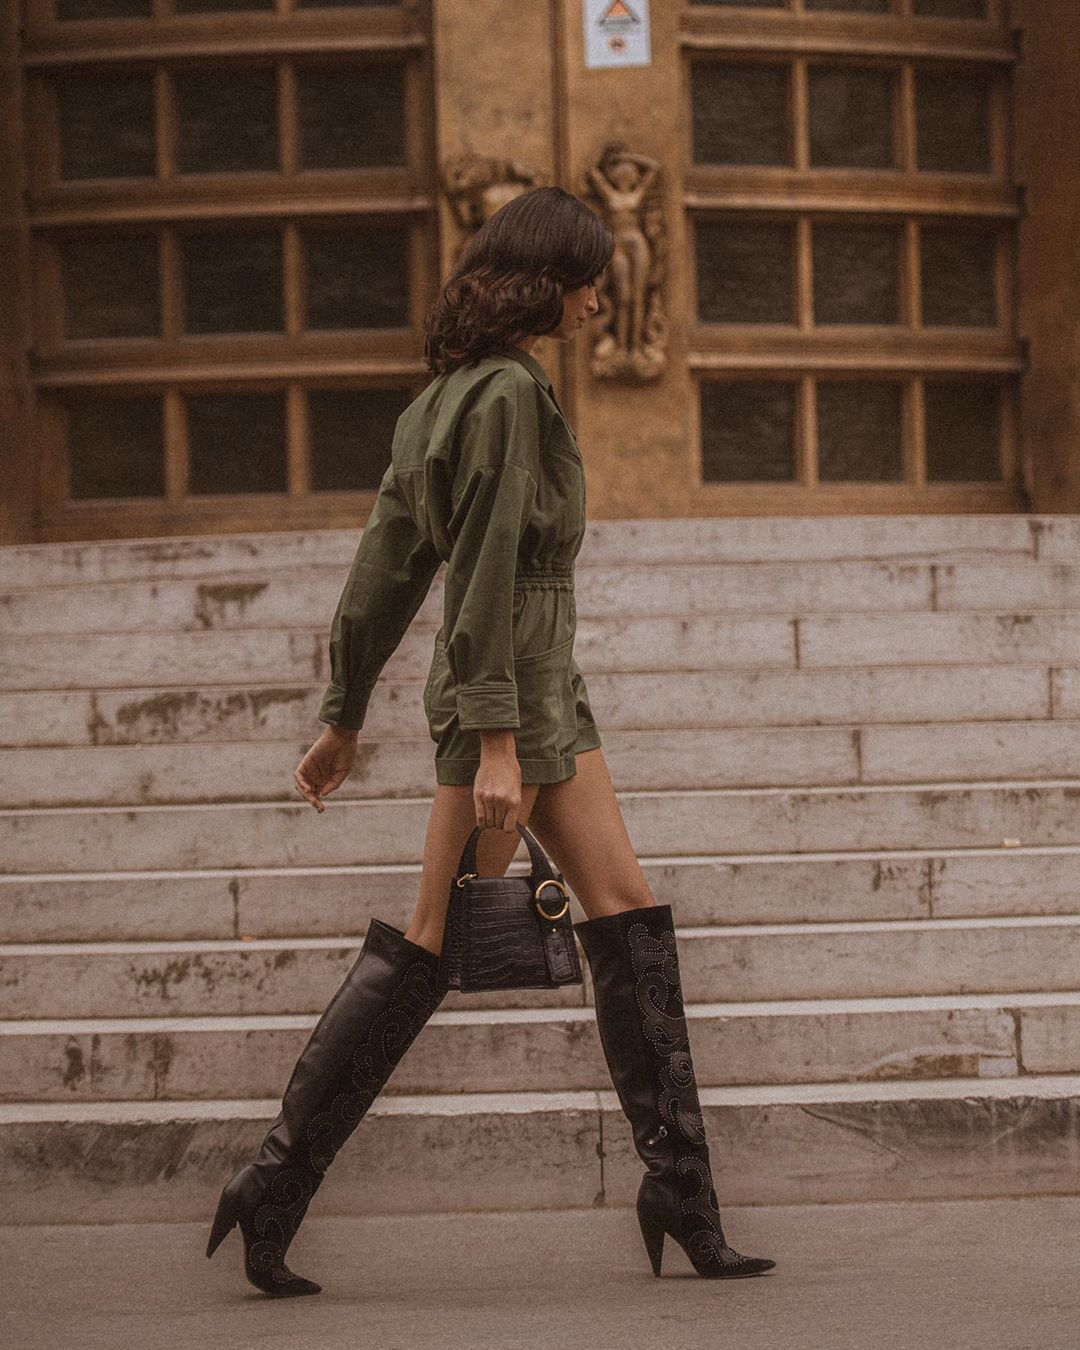 romper long sleeves knee high boots handbag